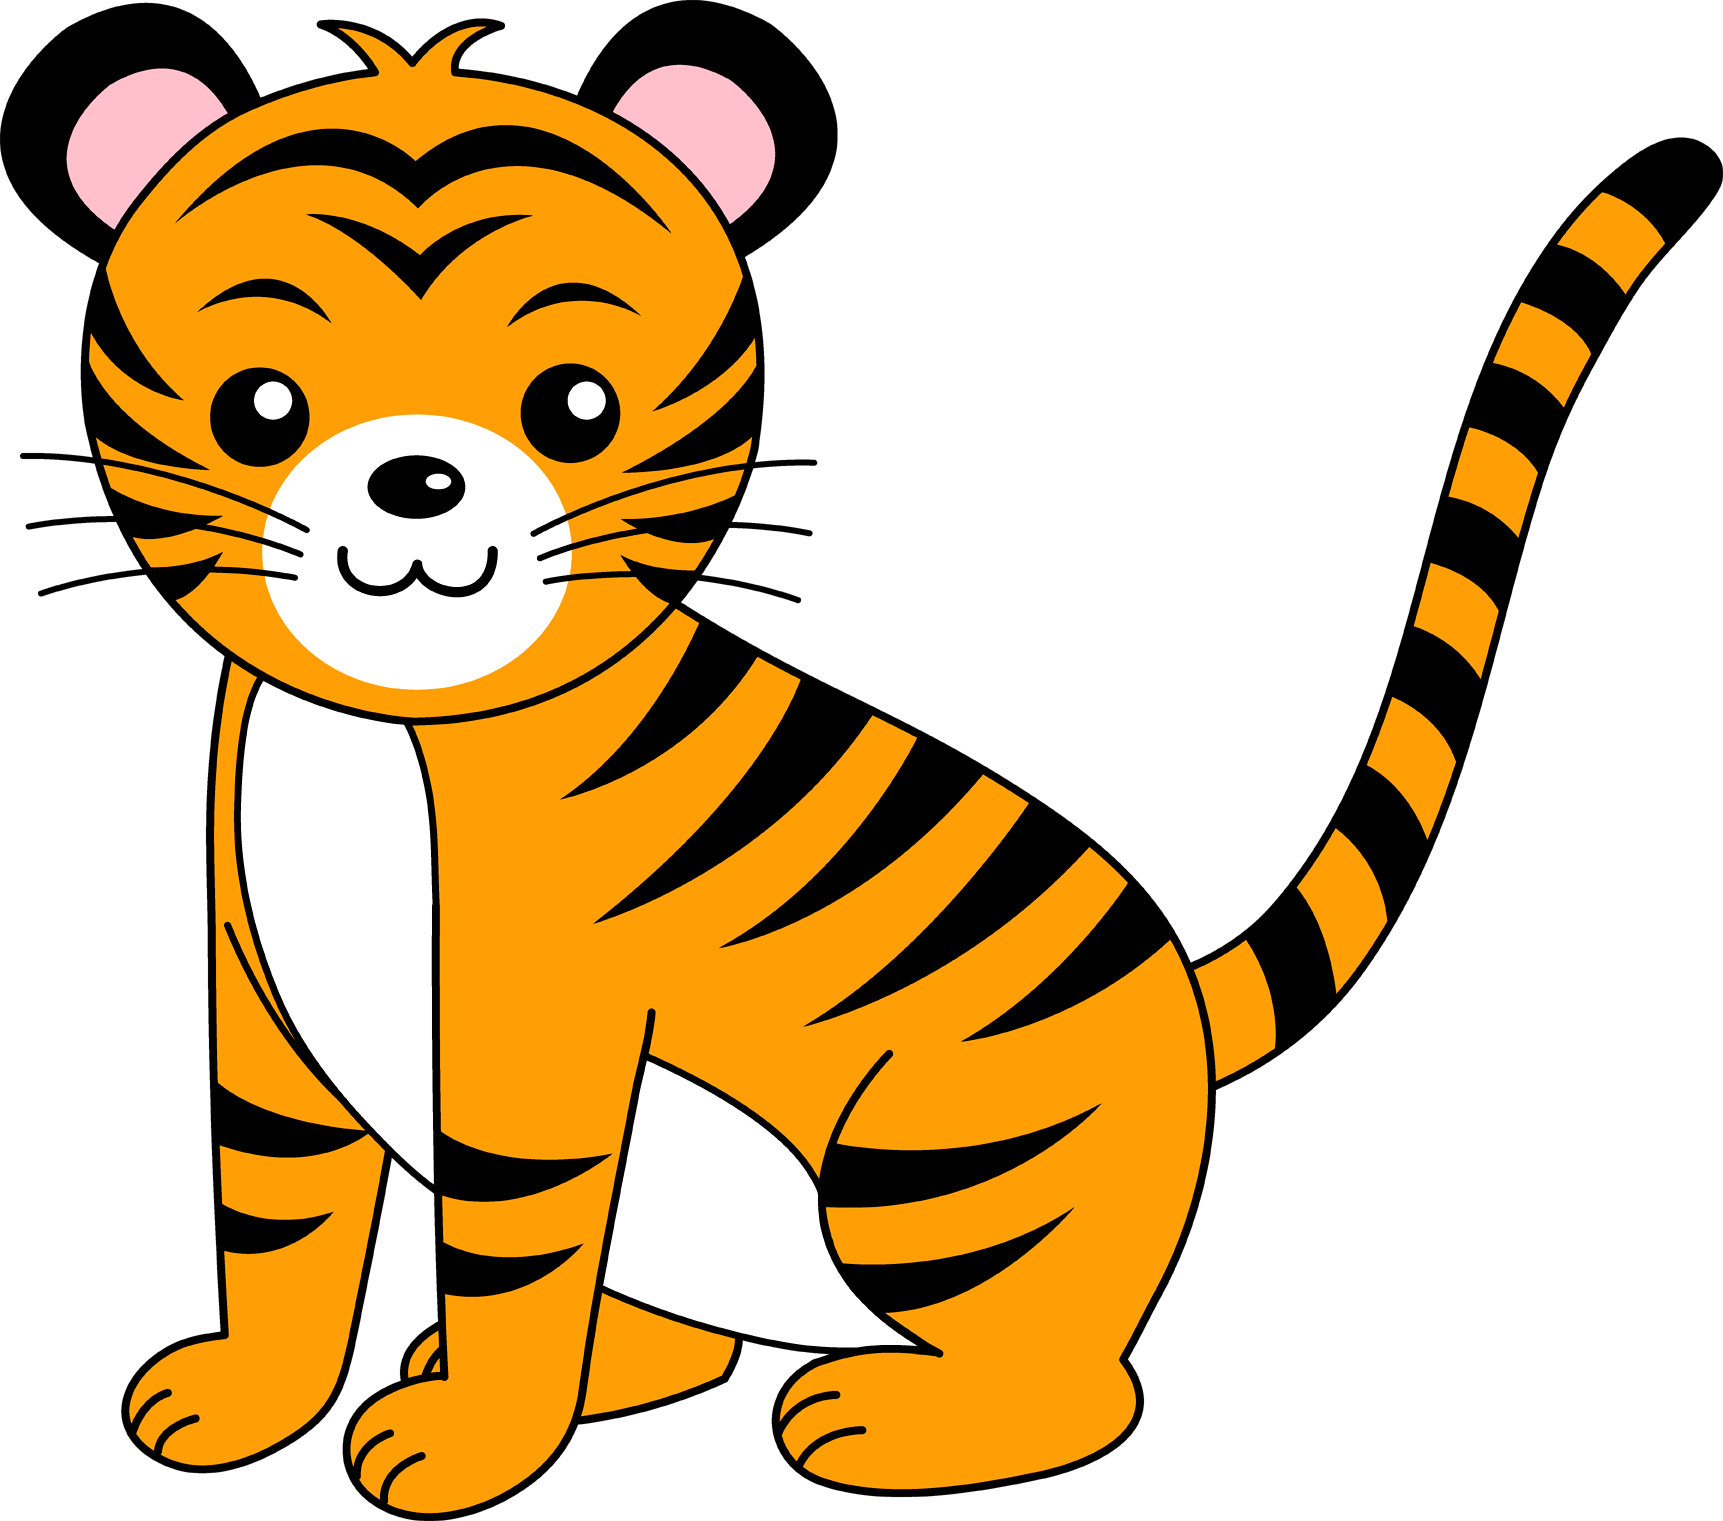 Tiger clipart png. Transparent images and free